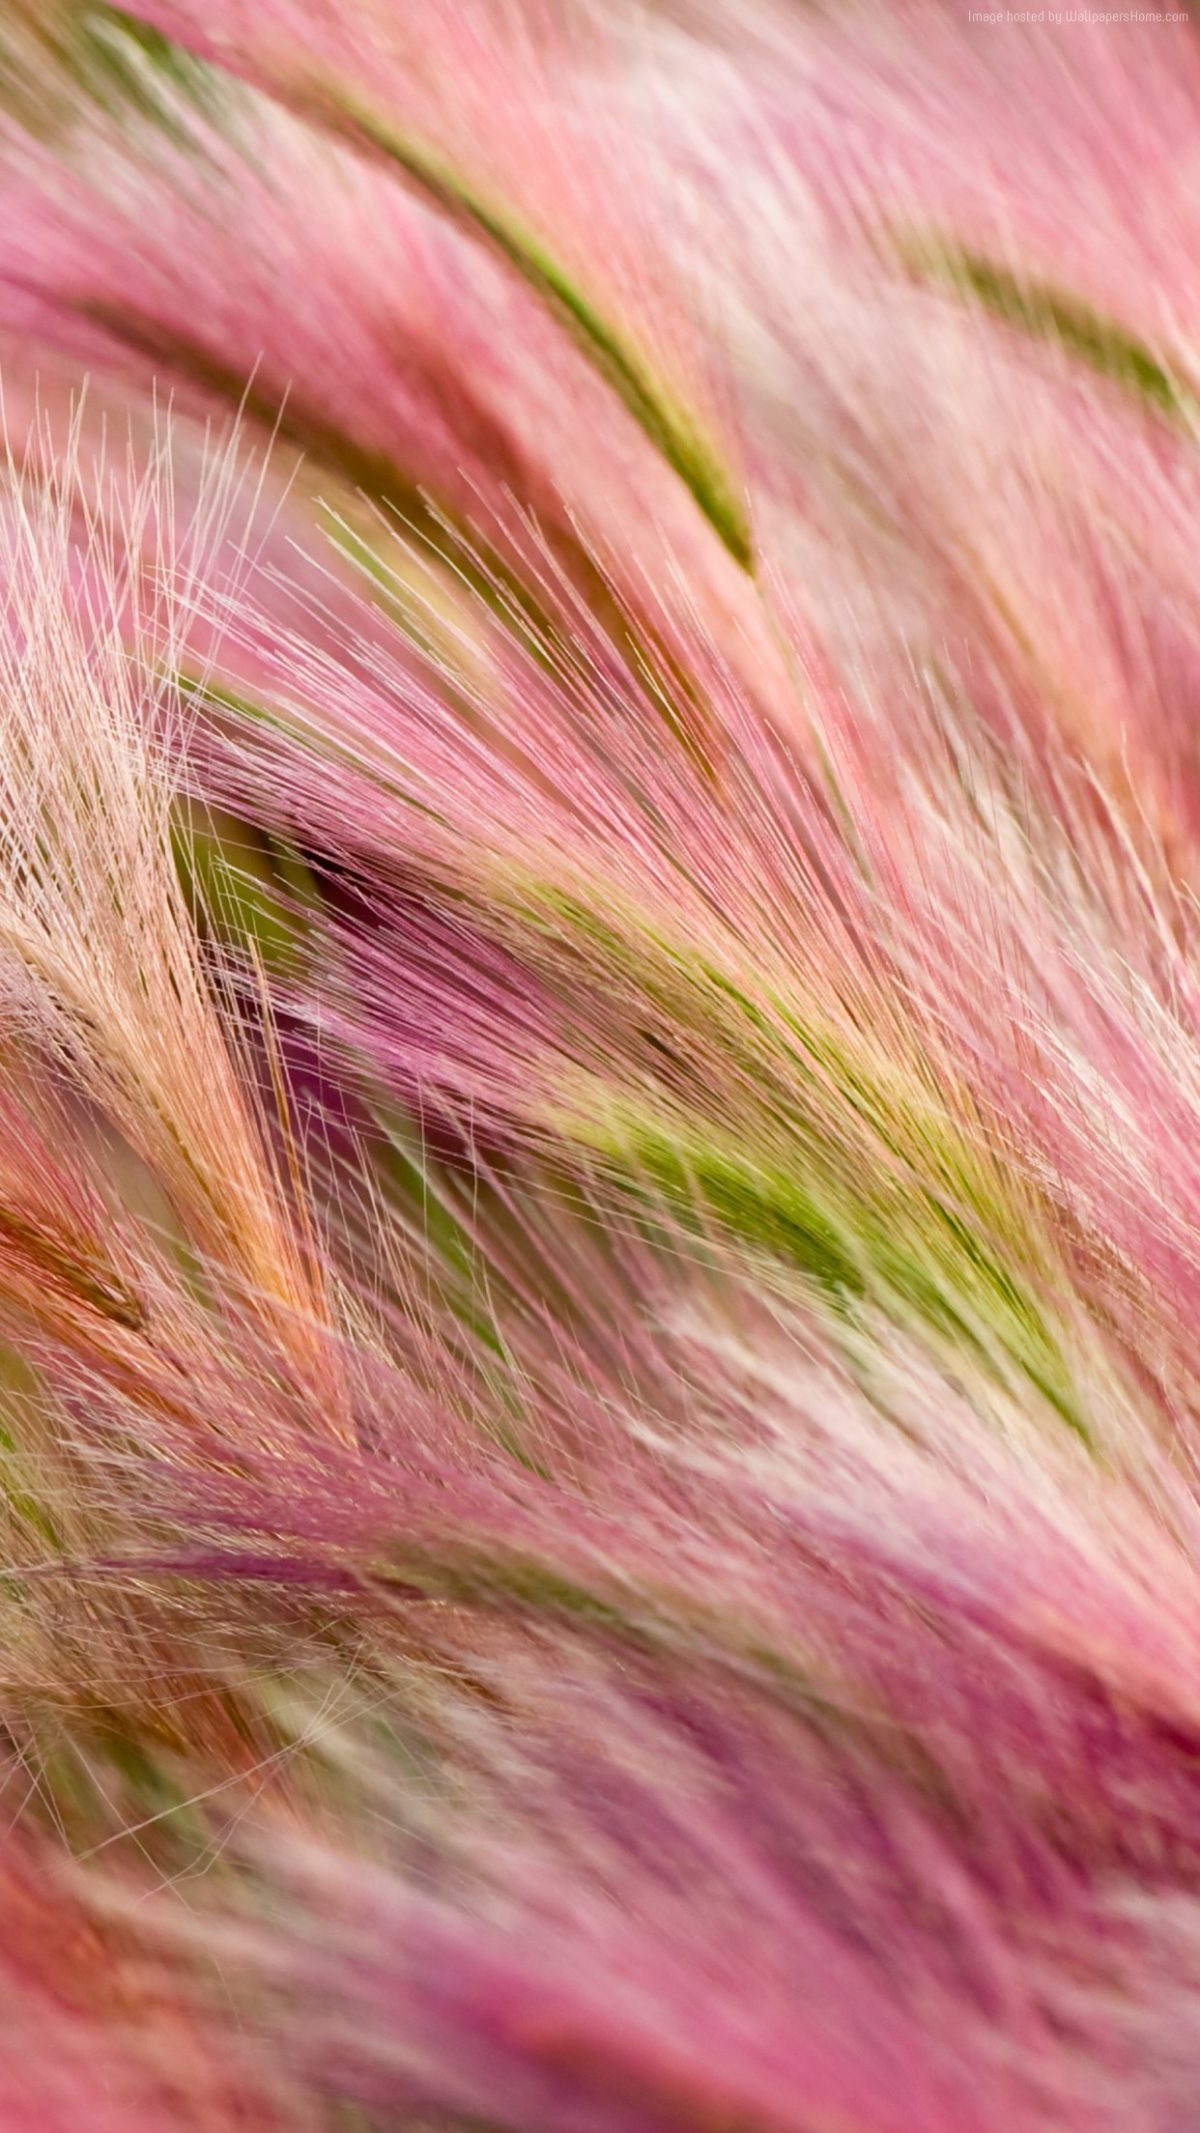 Red Pink Grass Abstract Apple Wallpaper Iphone Samsung Mobile Wallpaper New 1200x2133 Wallpaper Teahub Io